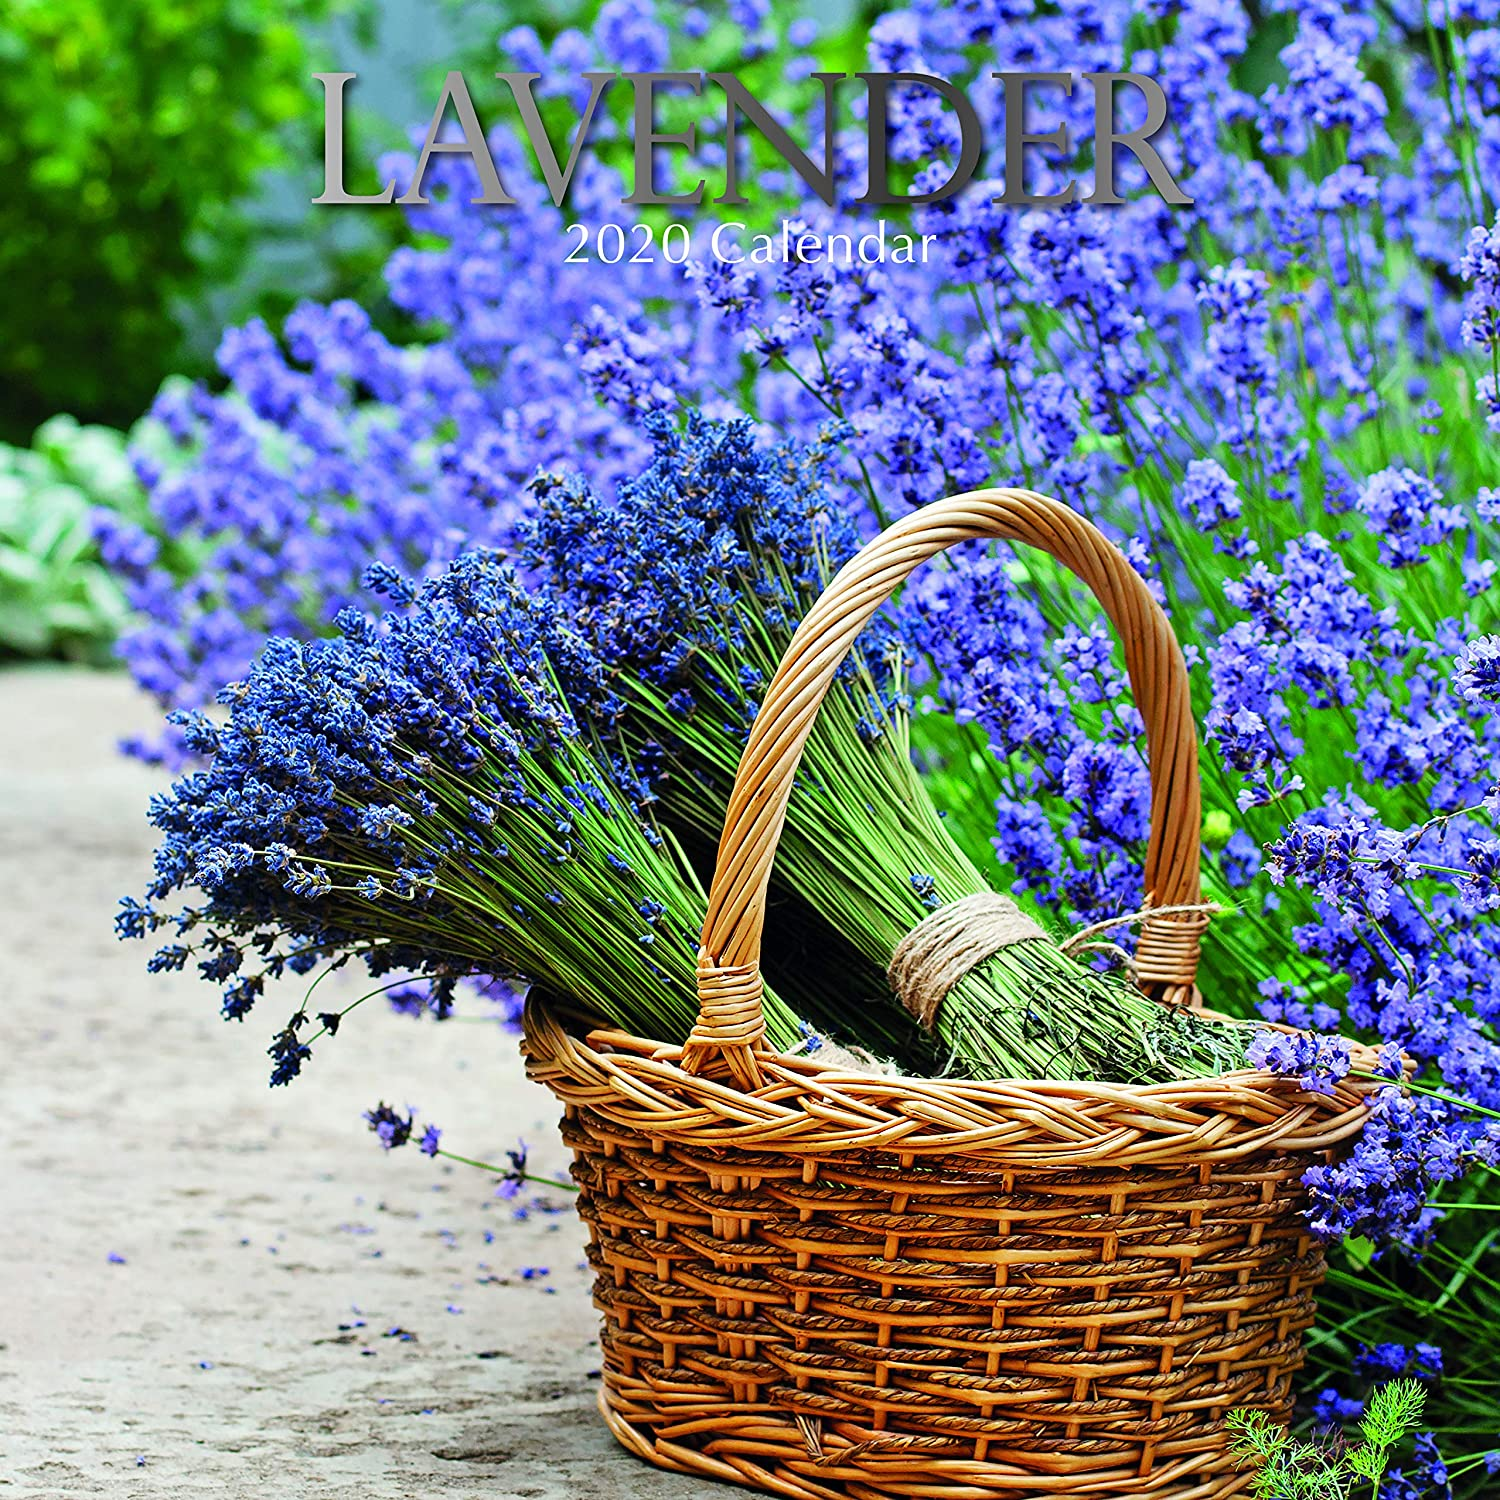 2020 Wall Calendar - Lavender Calendar, 12 x 12 Inch Monthly View, 16-Month, Blooms and Flowers Theme, Includes 180 Reminder Stickers